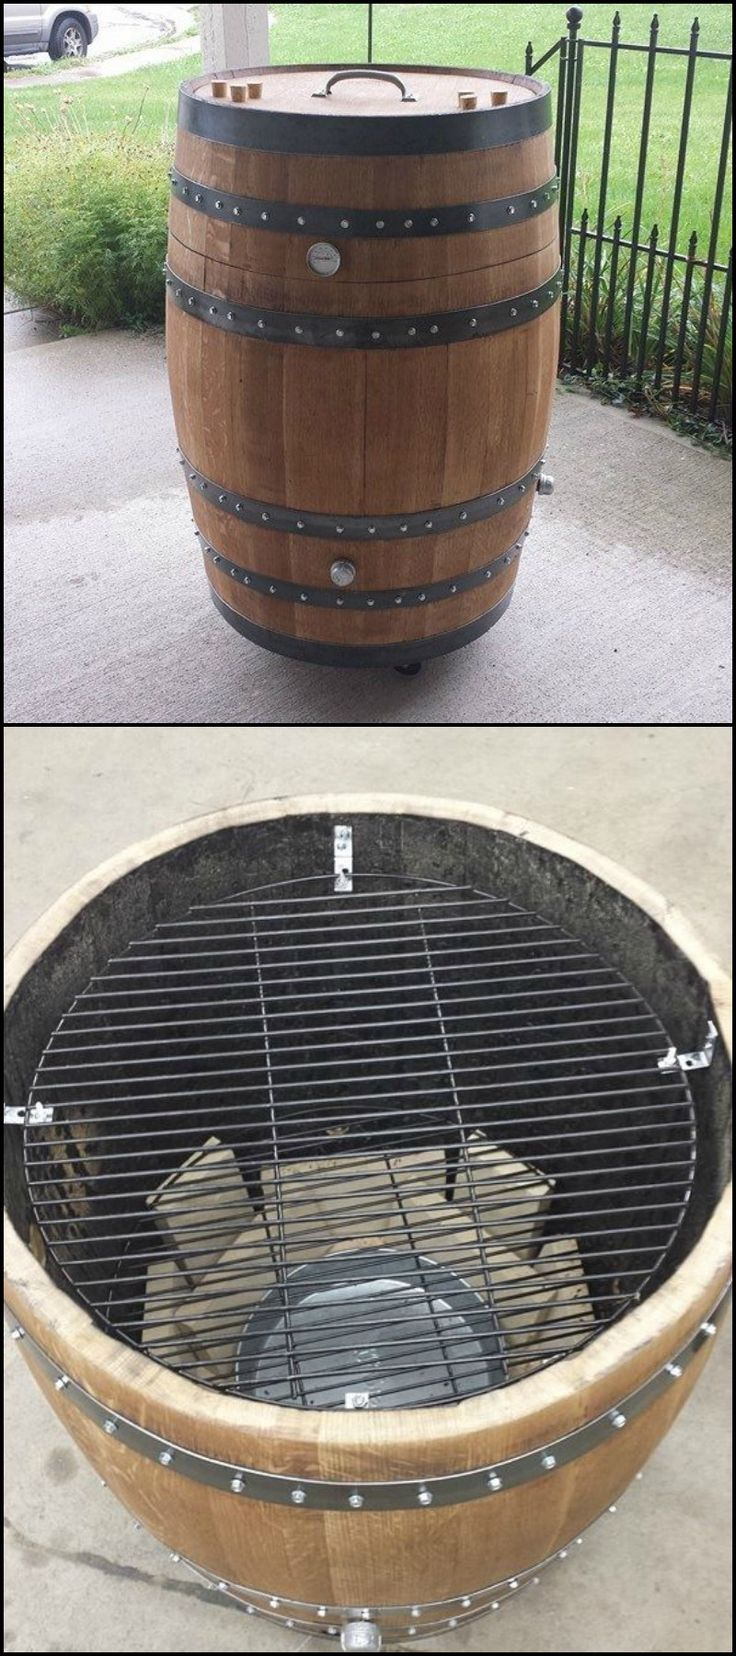 How to Build a Whiskey Barrel BBQ Smoker  http://diyprojects.ideas2live4.com/2015/06/06/how-to-build-a-whiskey-barrel-bbq-smoker/  Prettier than a drum barrel smoker, eh? Though its design is not the usual, it definitely functions well without any issues -- beauty AND function in one!  Do you have access to an empty whisky barrel? Then this should be your next project. :)